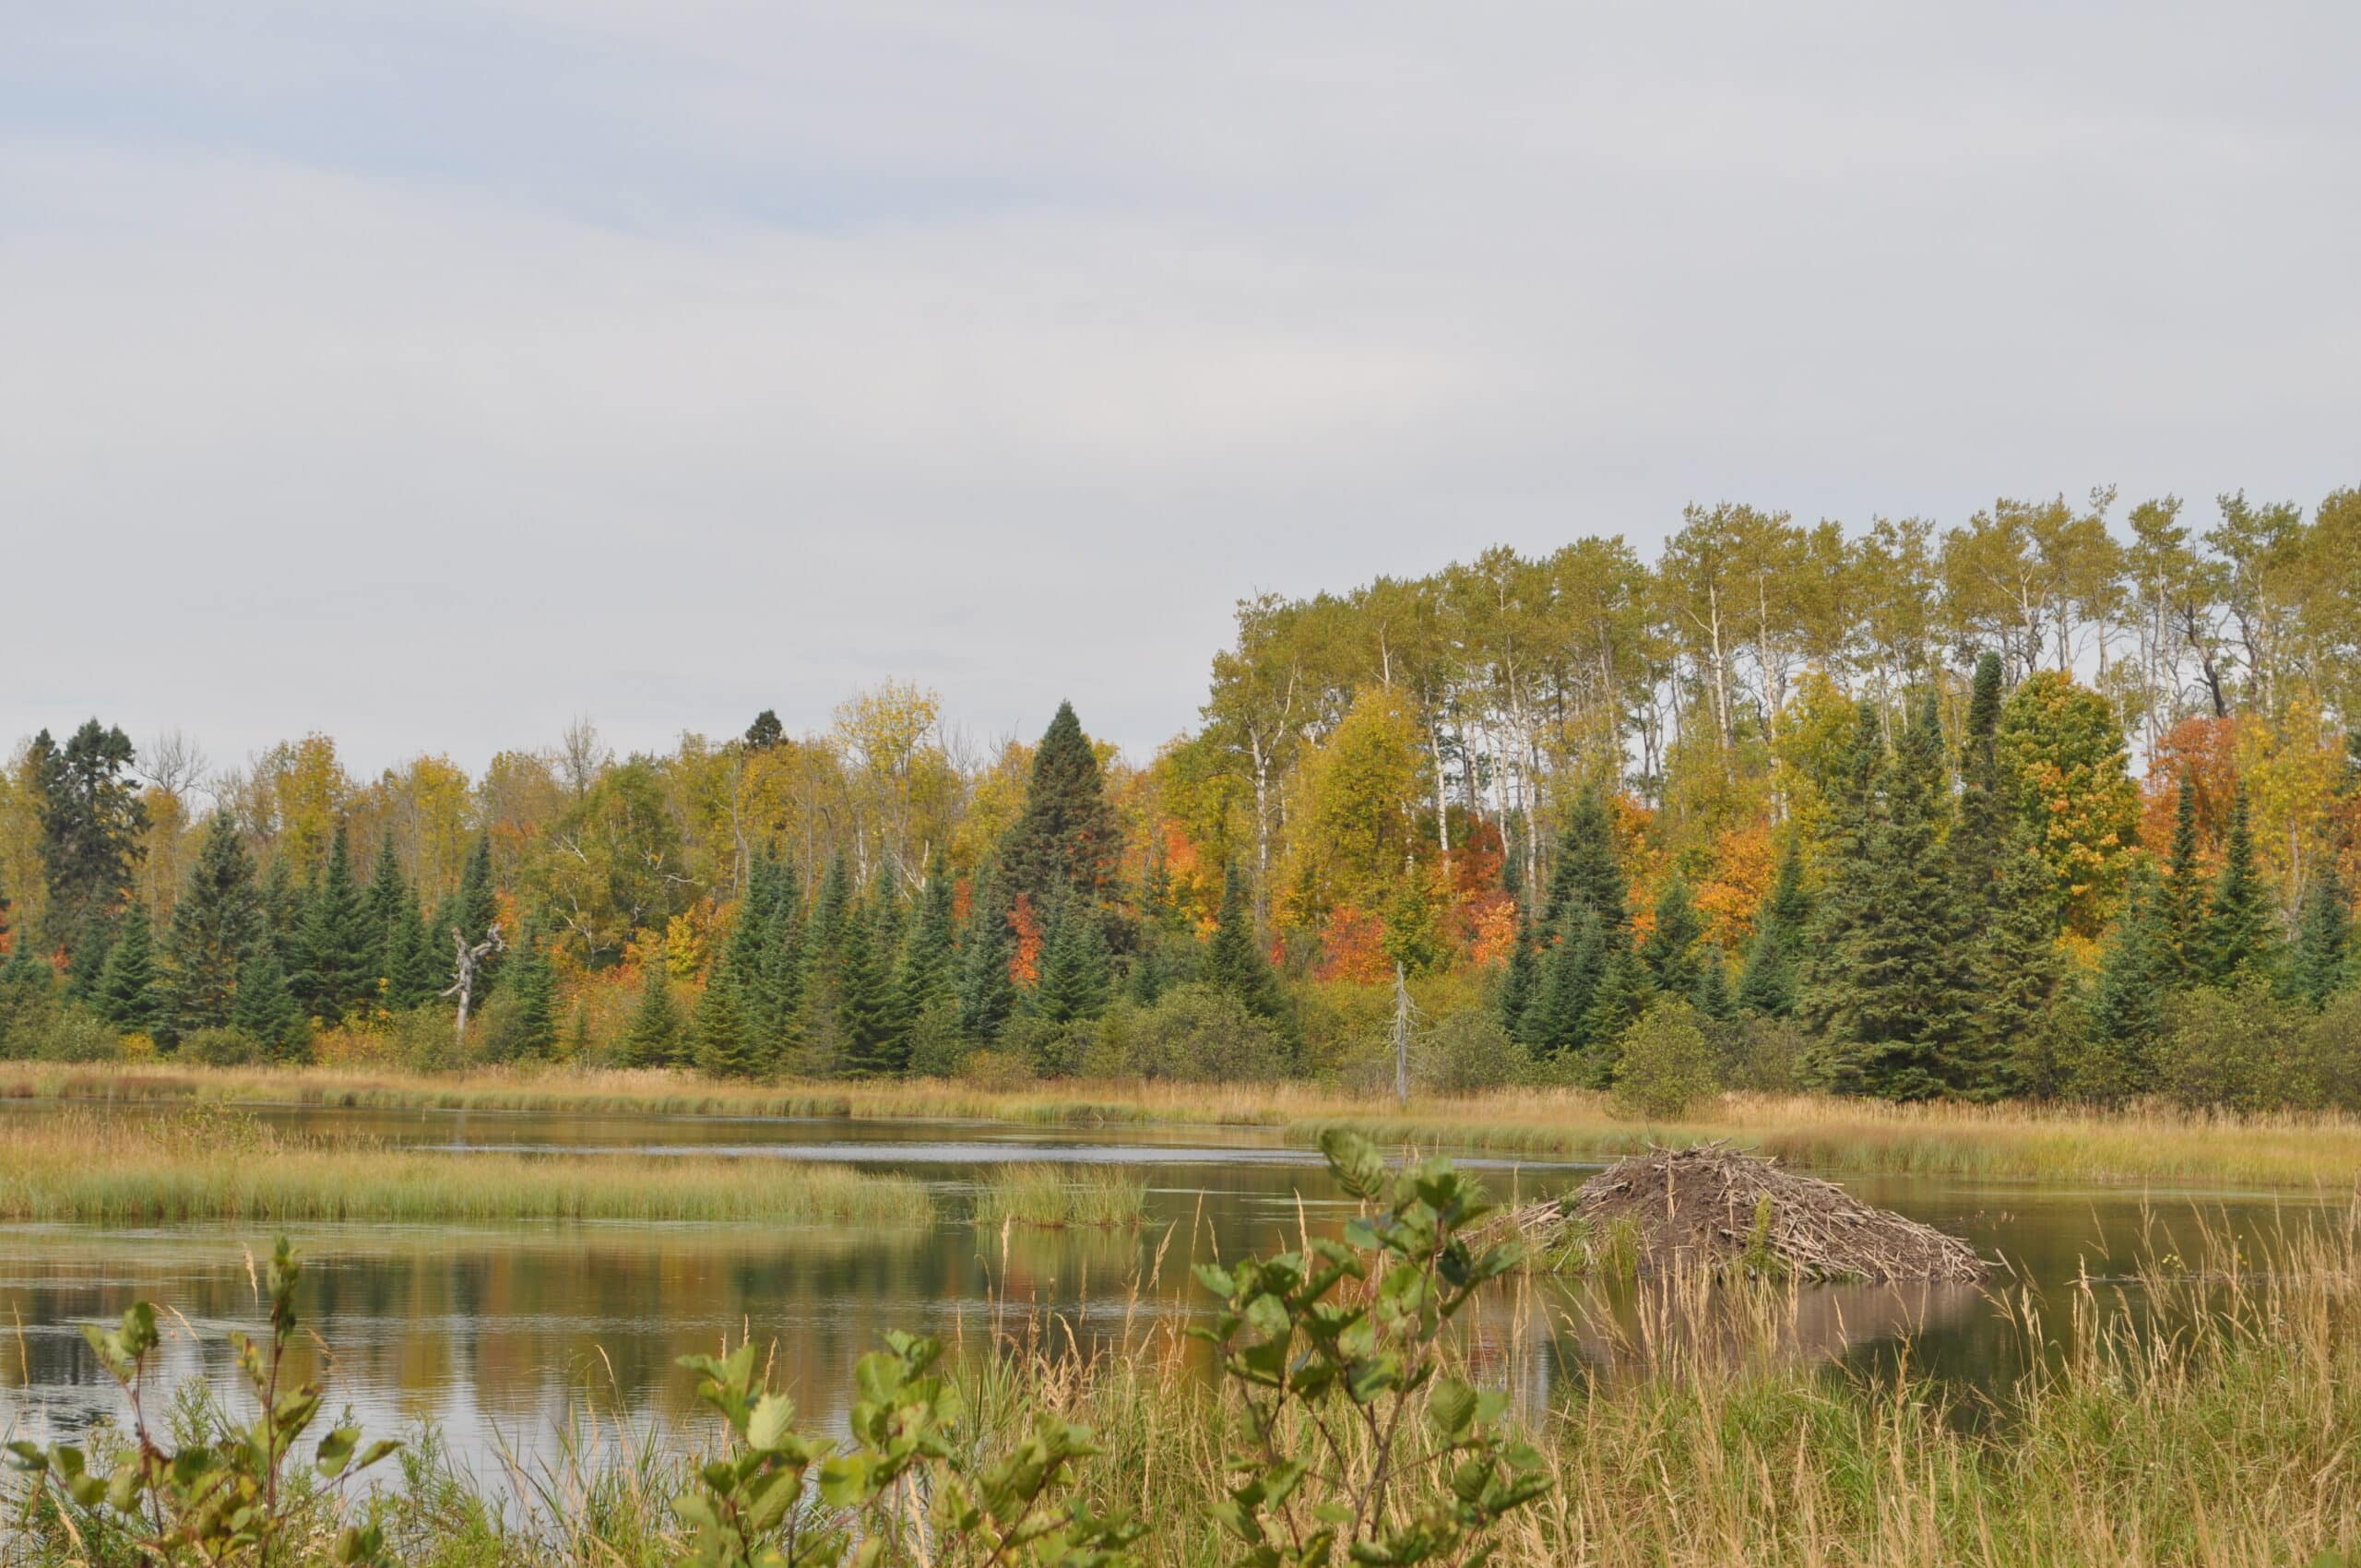 Fall colors changing across a Northern Minnesota Lake